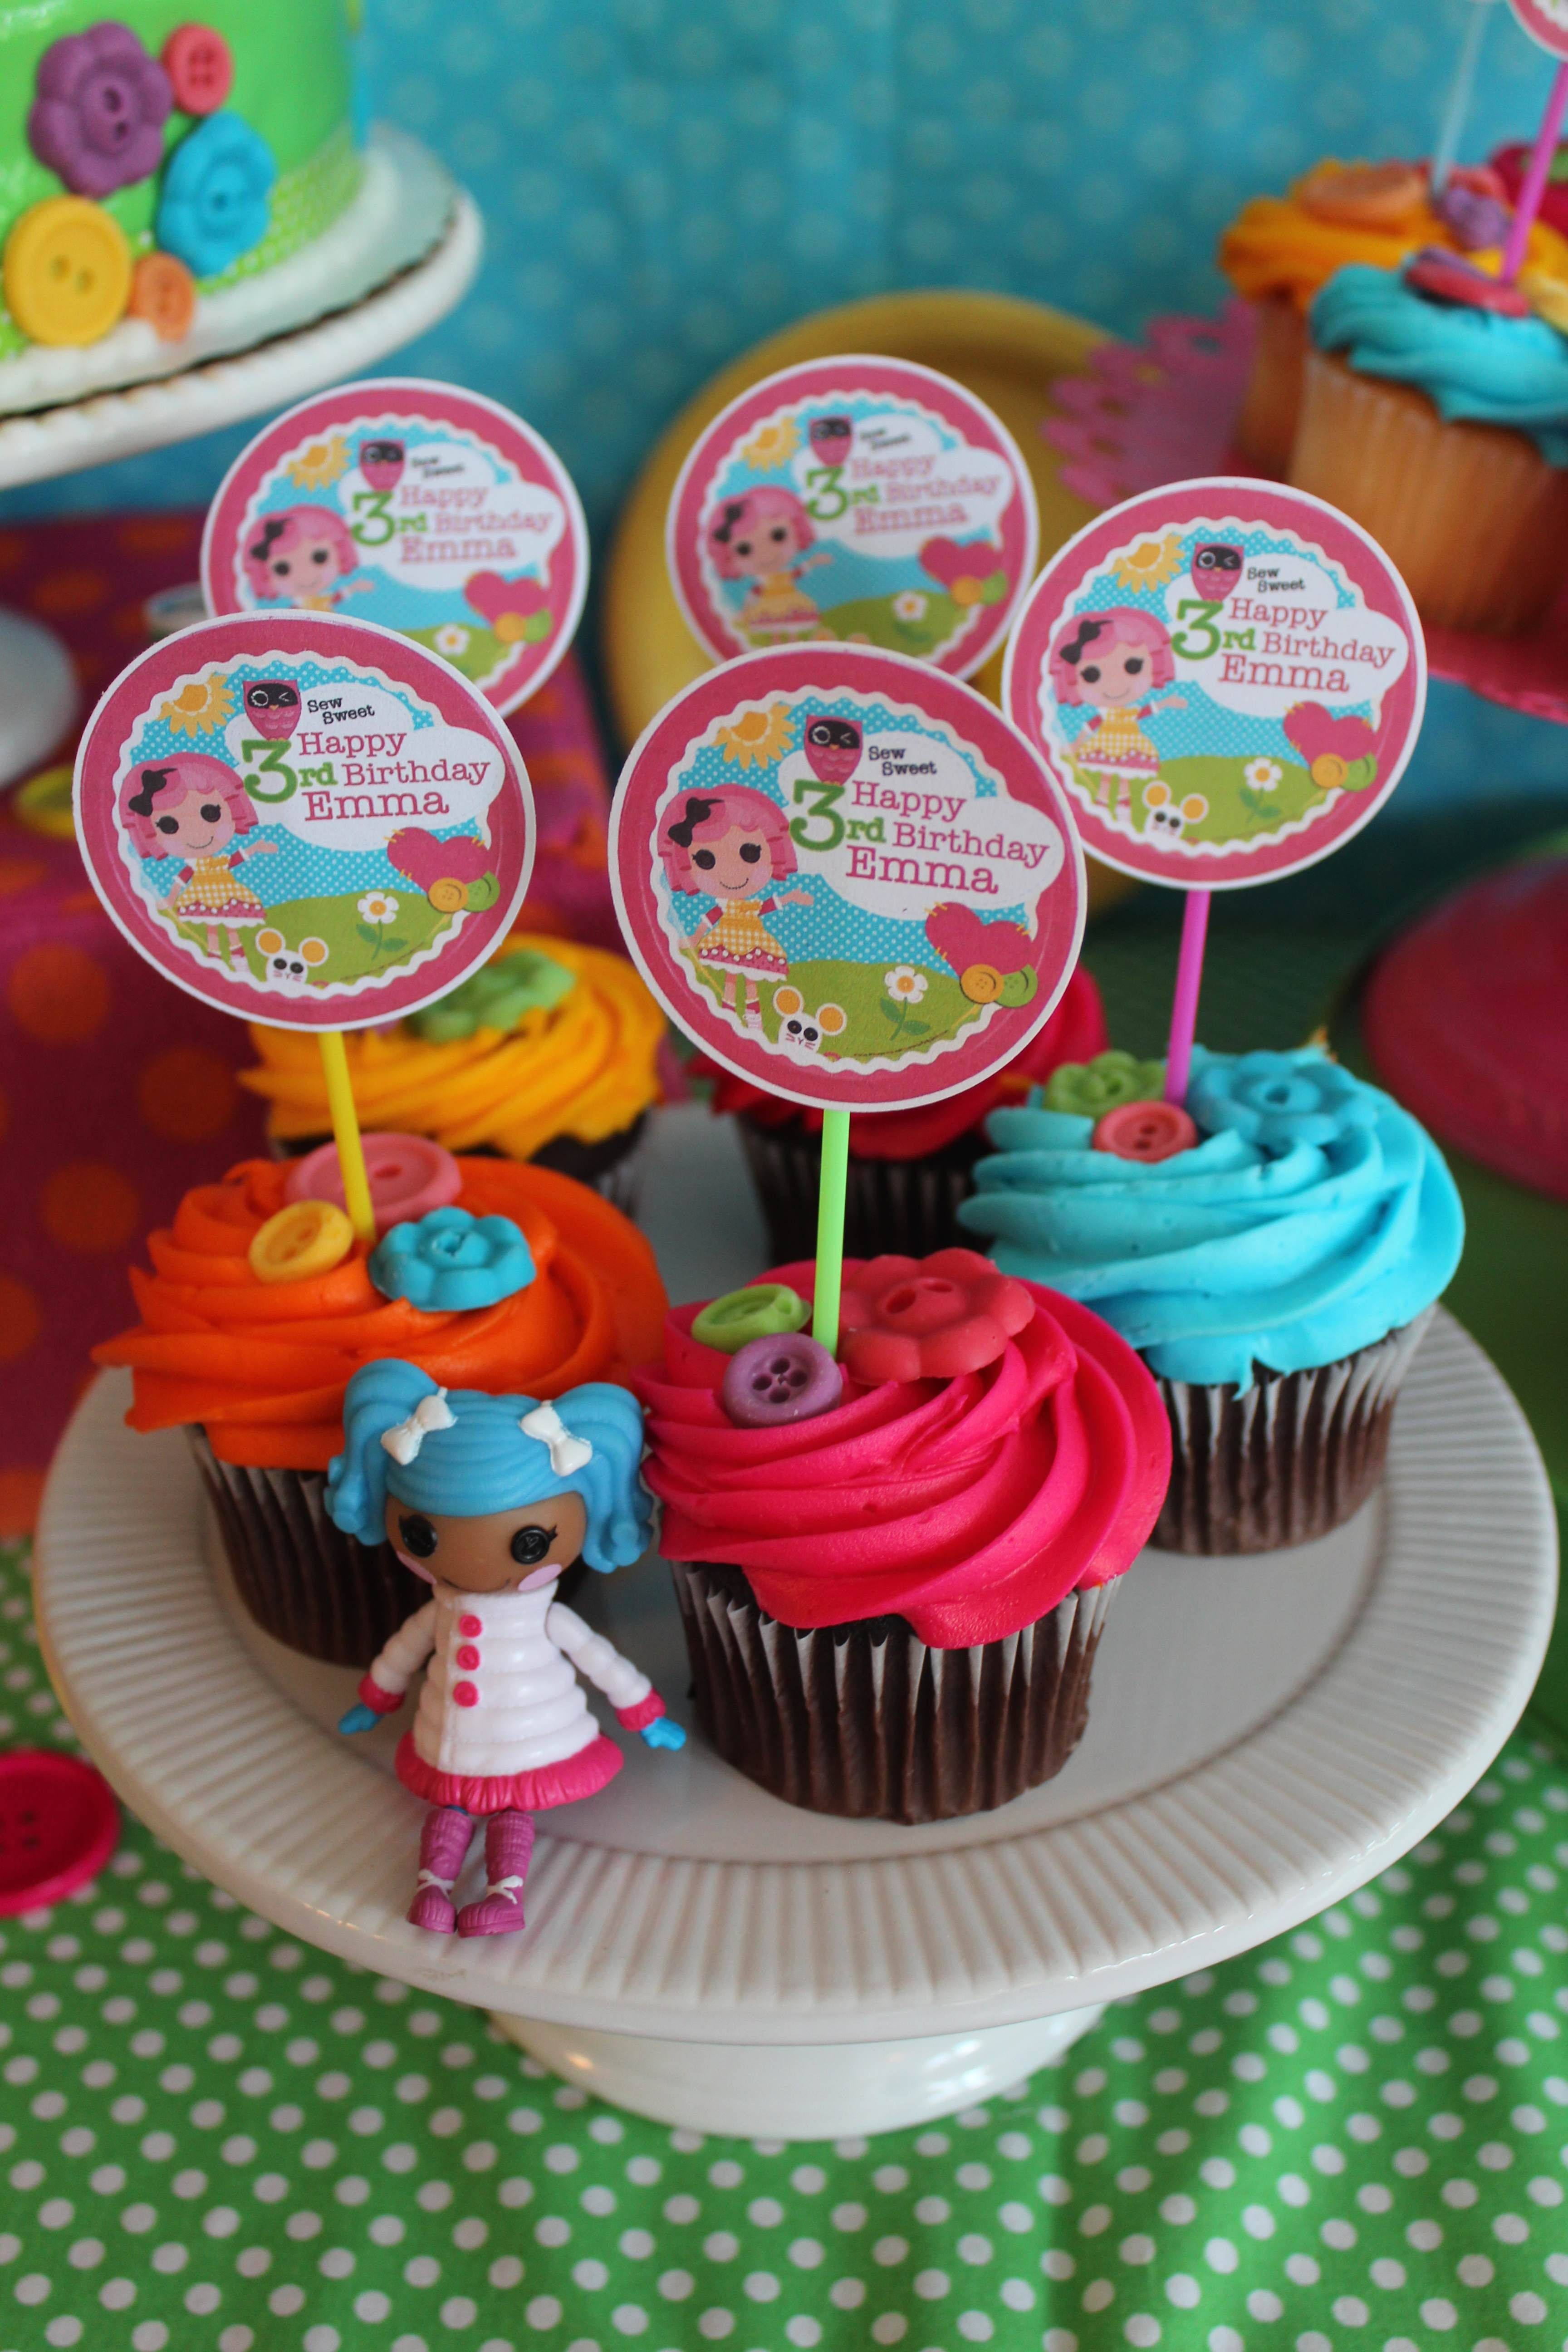 Lalaloopsy cupcakes I like the color one the frosting